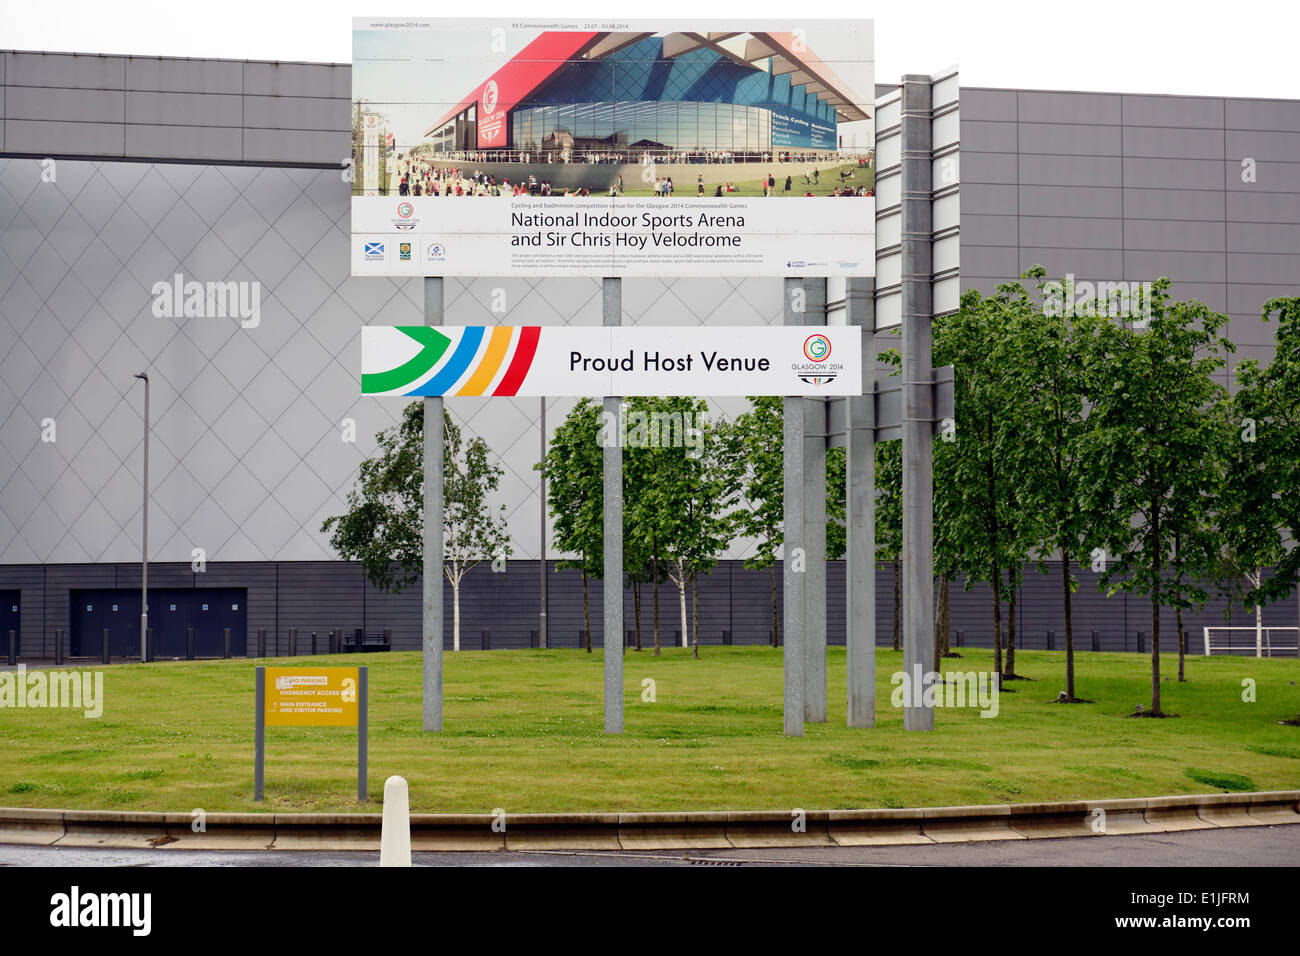 Sign at the Natonal Indoor Sports Arena and Sir Chris Hoy Velodrome venues for the Glasgow 2014 Commonwealth Games, Scotland, UK - Stock Image